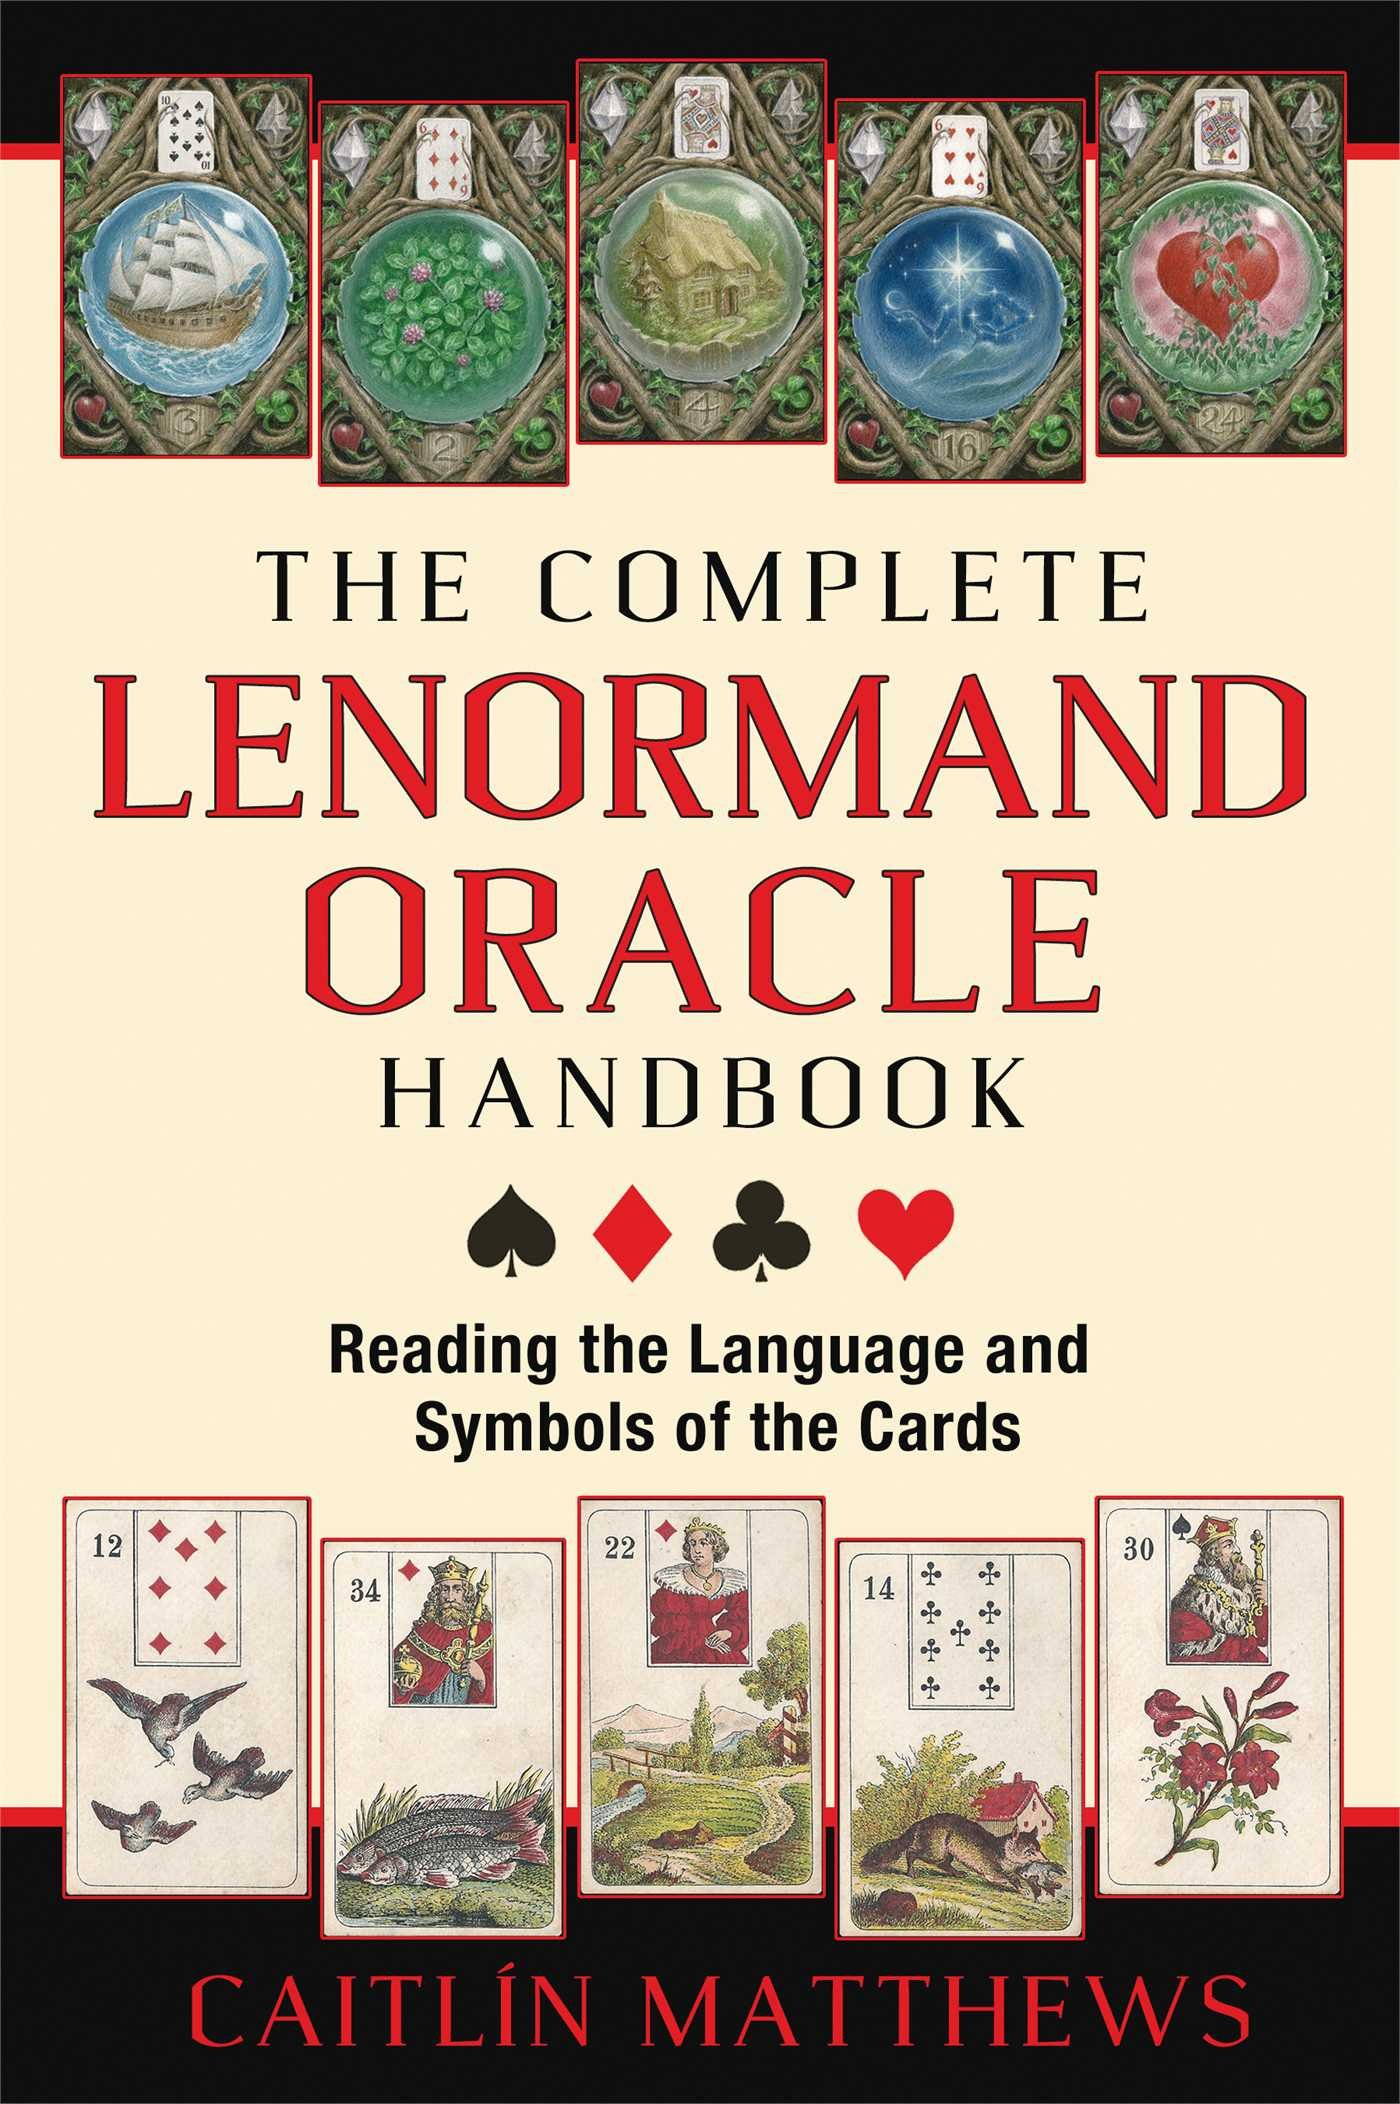 The complete lenormand oracle handbook reading the language and the complete lenormand oracle handbook reading the language and symbols of the cards caitln matthews 9781620553251 amazon books biocorpaavc Choice Image